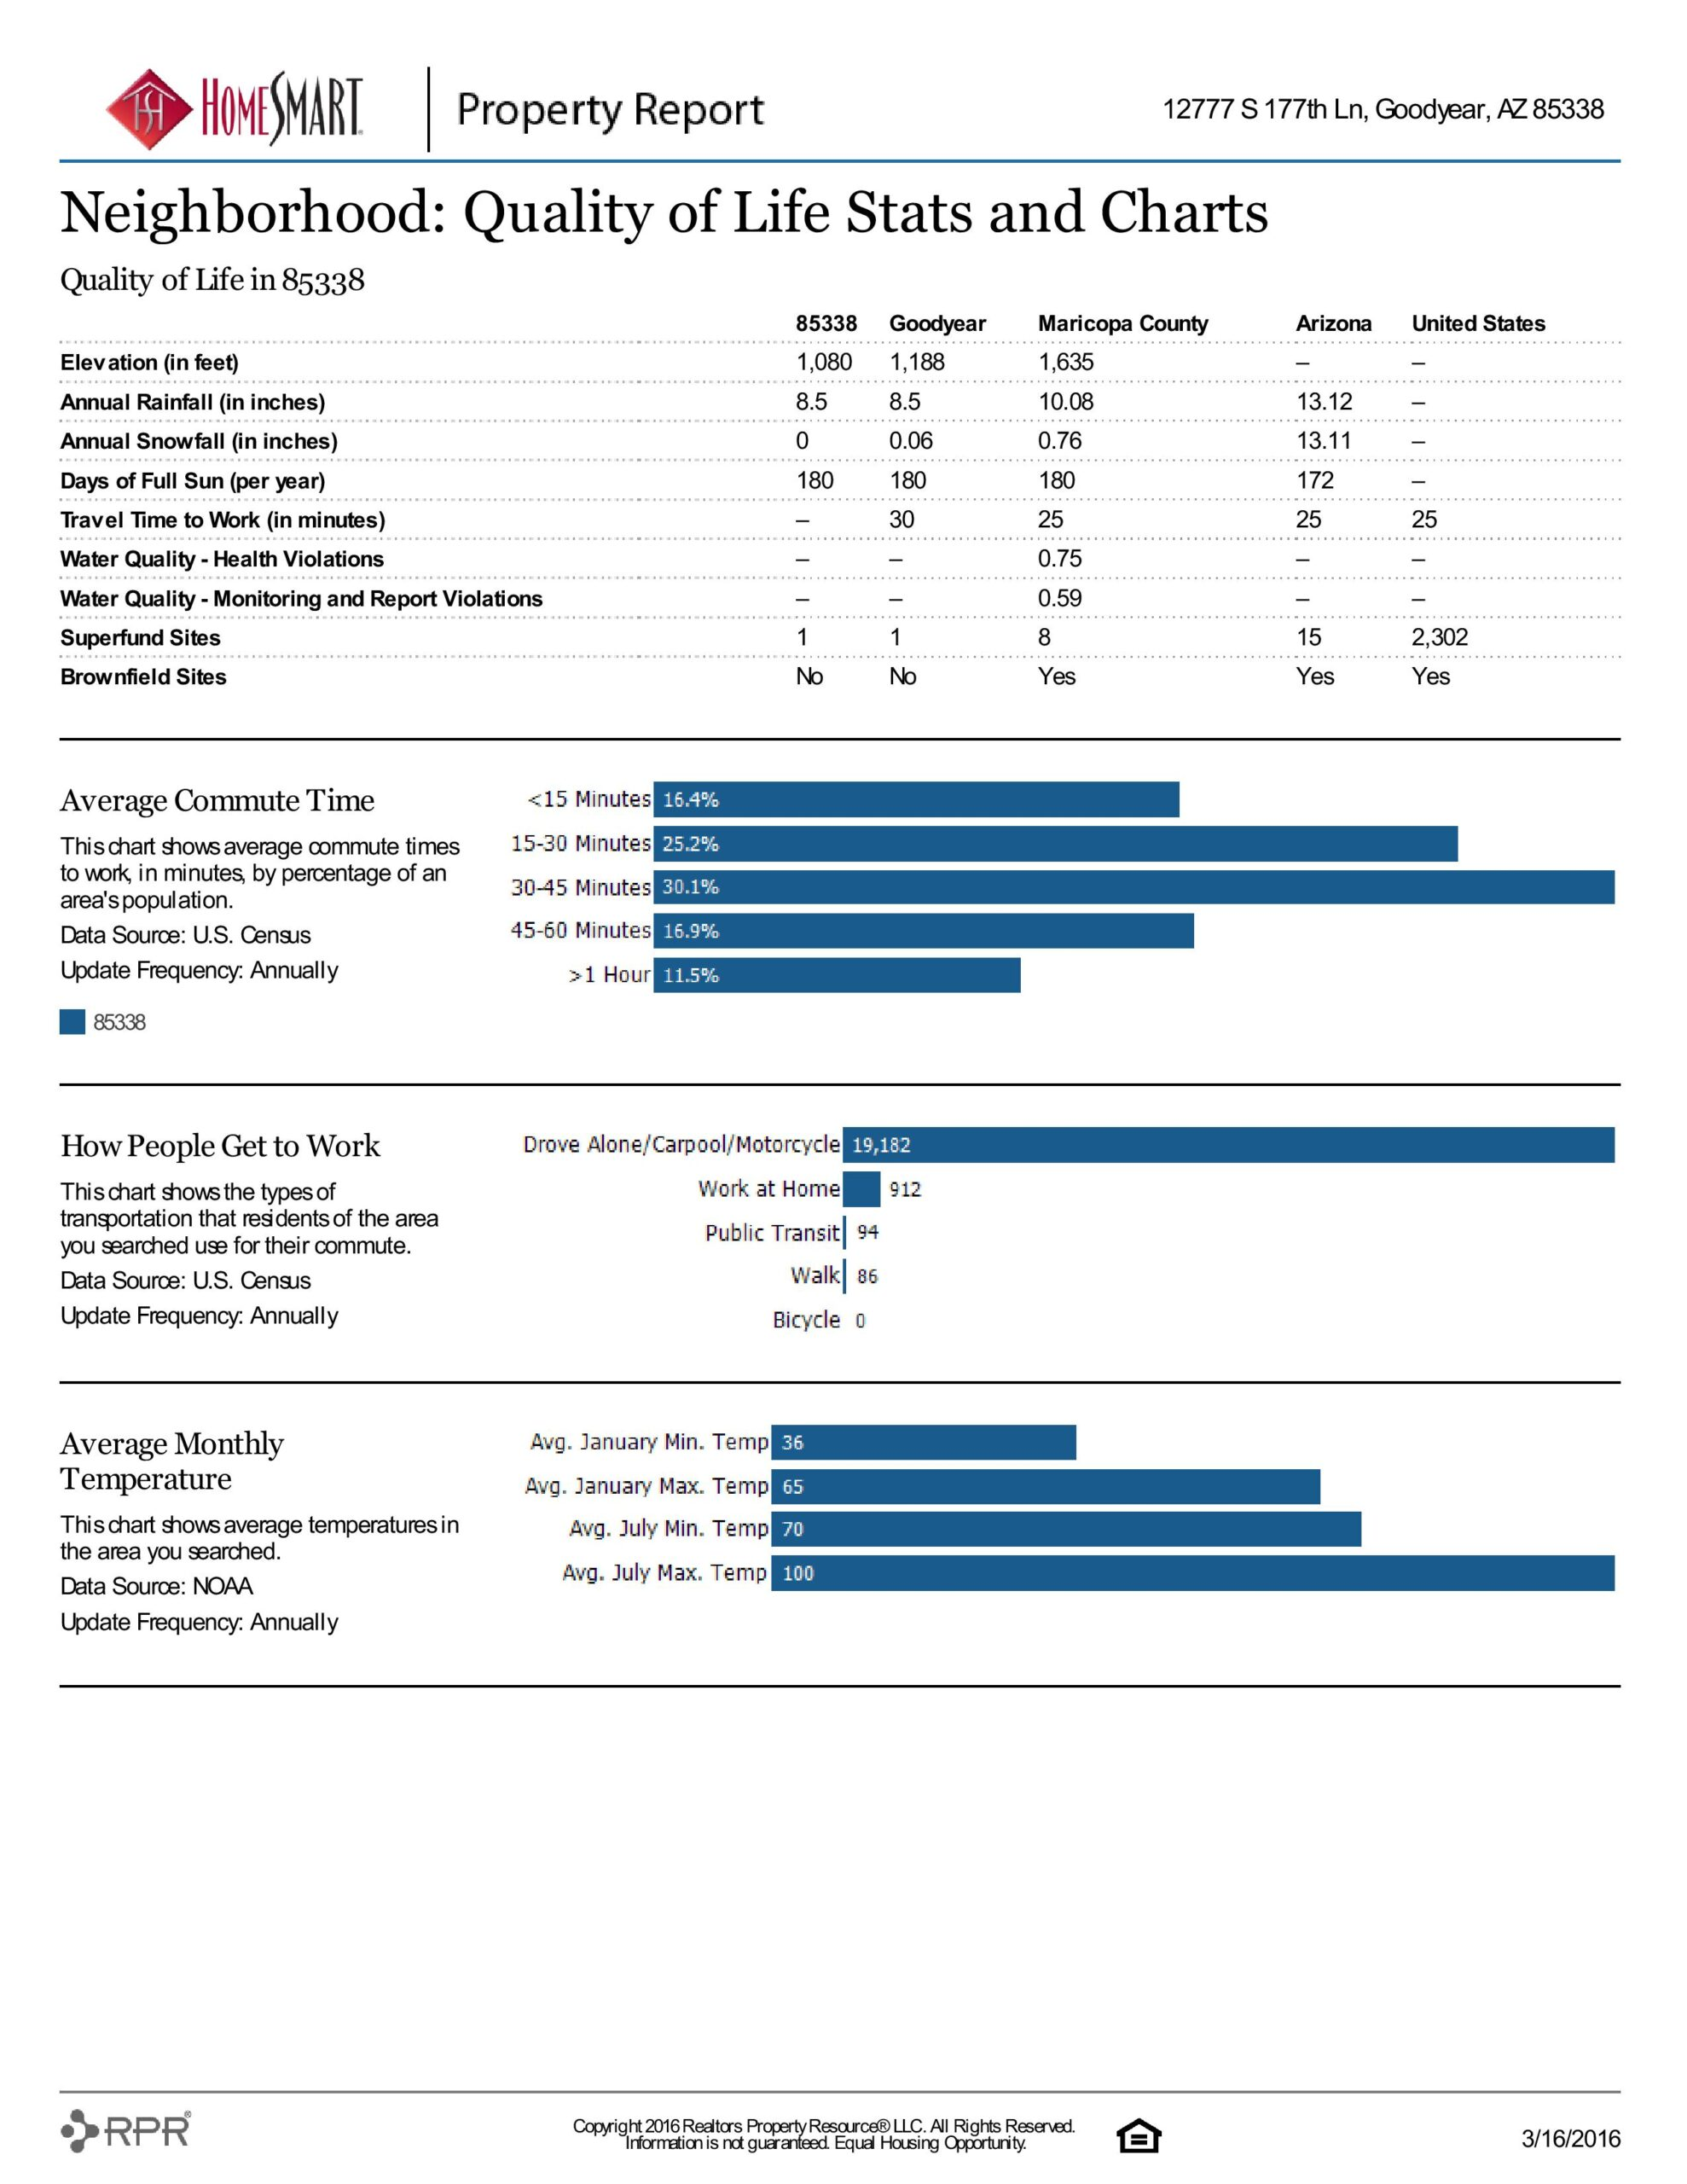 12777 S 177TH LANE PROPERTY REPORT-page-023